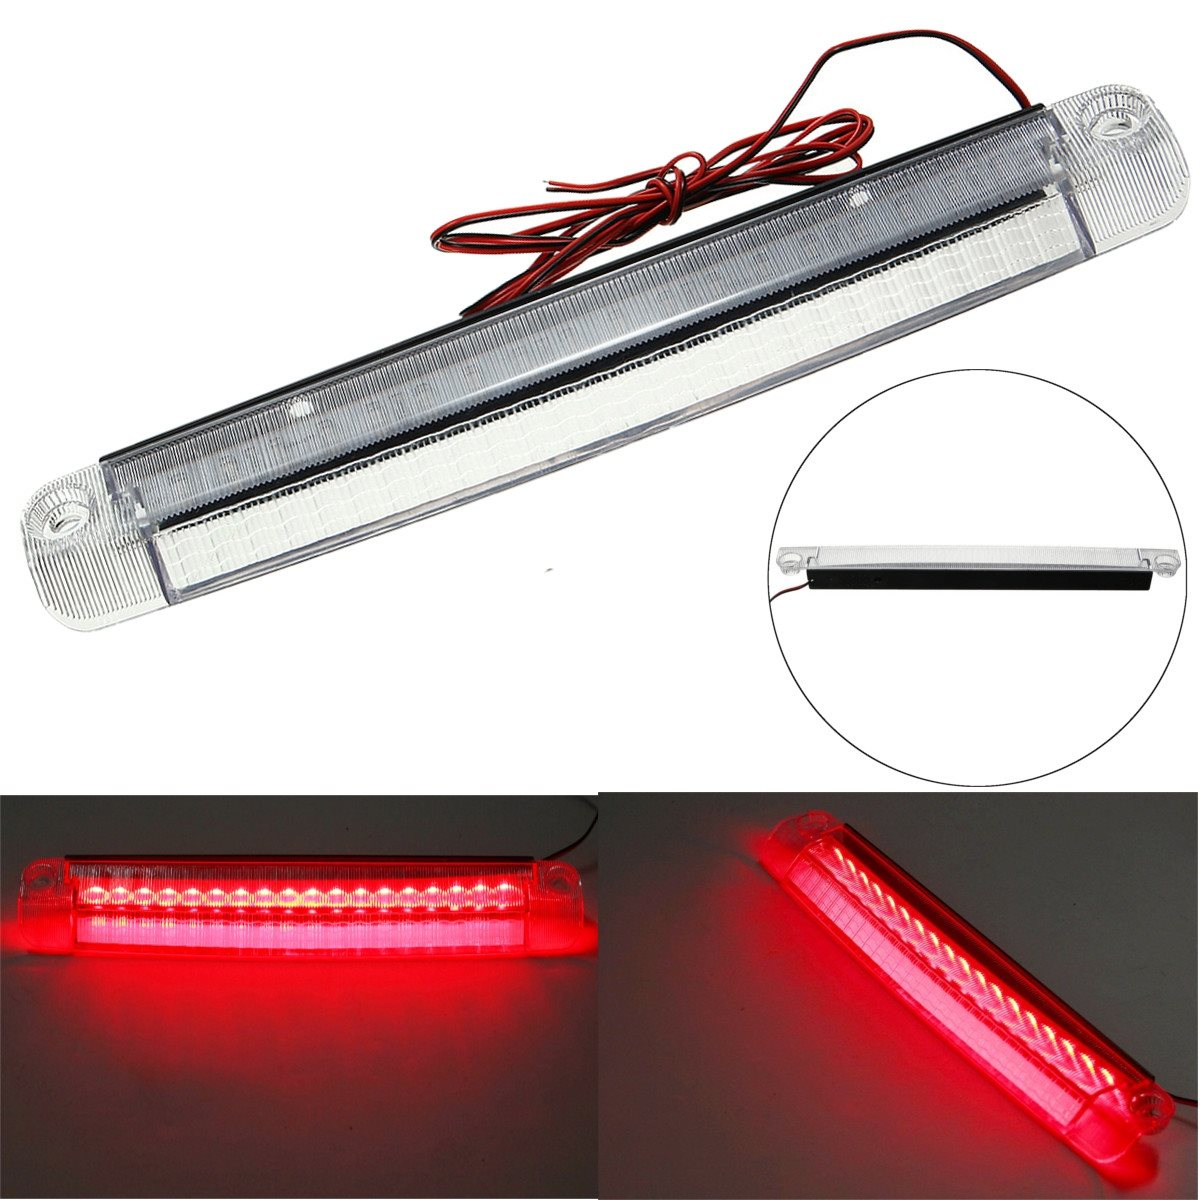 Unverisal 12V 5W Car 18 LED Car Reversing Lights Rear Tail Third Brake Stop Light High Mount Lamp Red 1210 selby стульчик для кормления 252 selby желтый